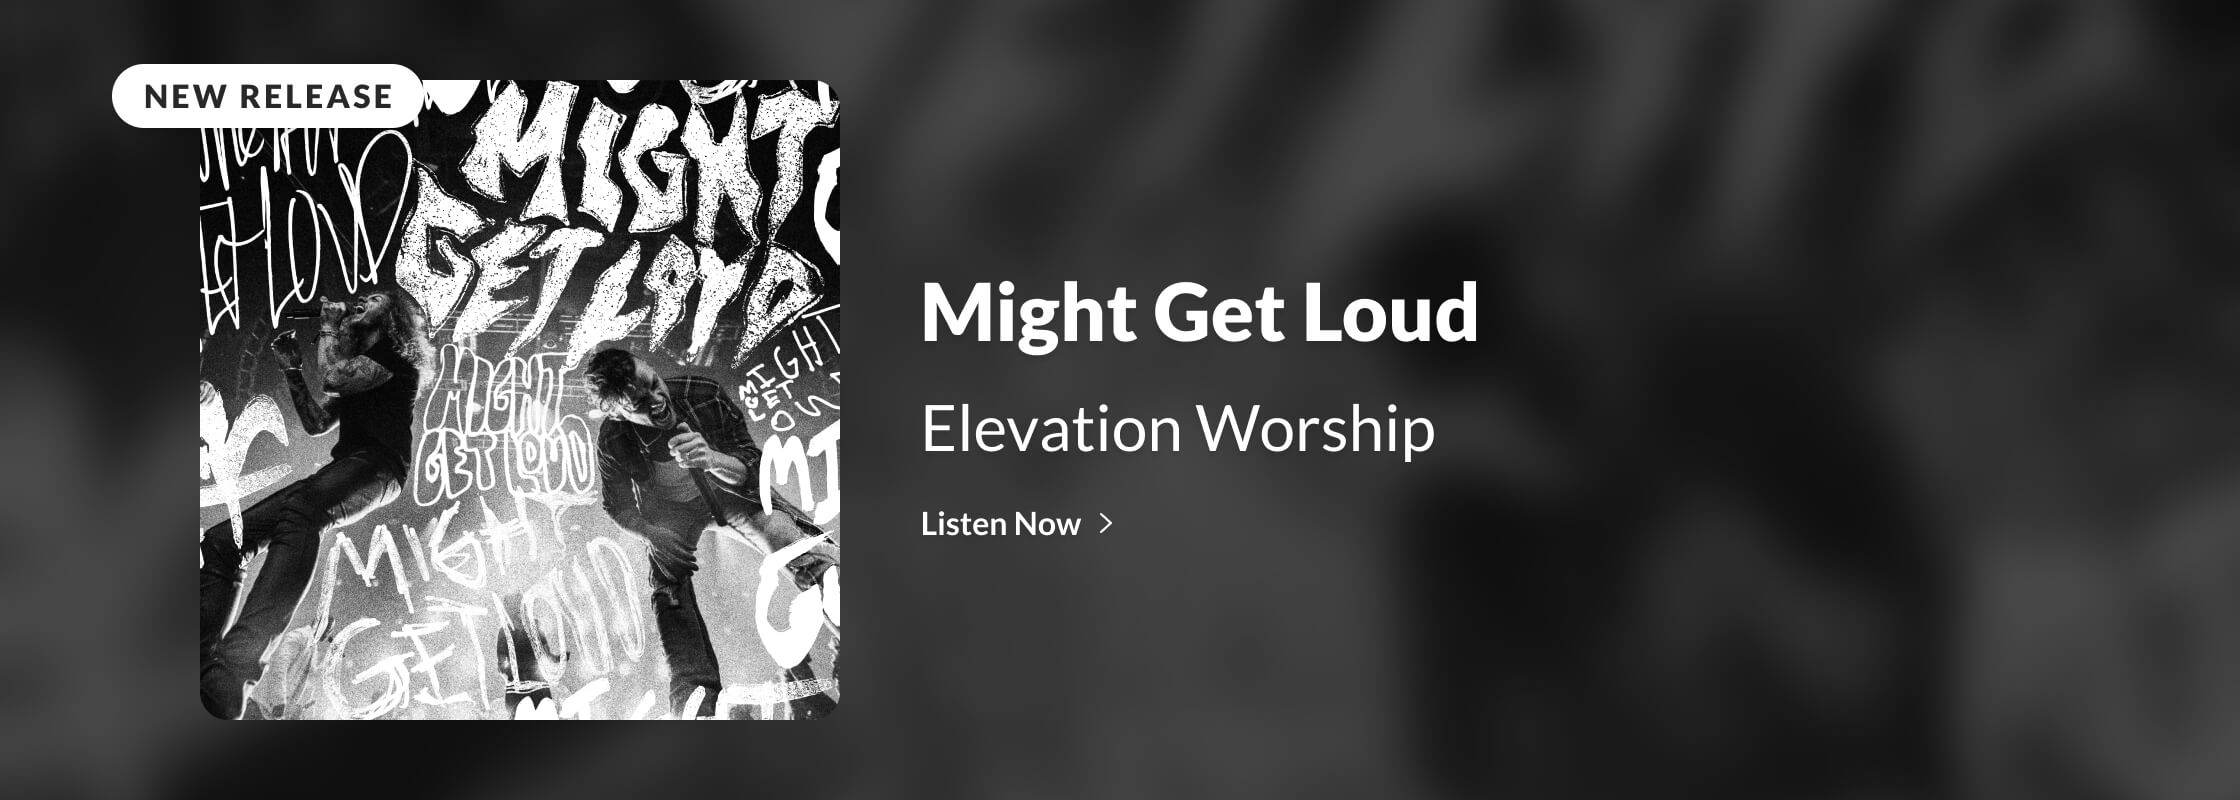 Elevation Worship | Might Get Loud